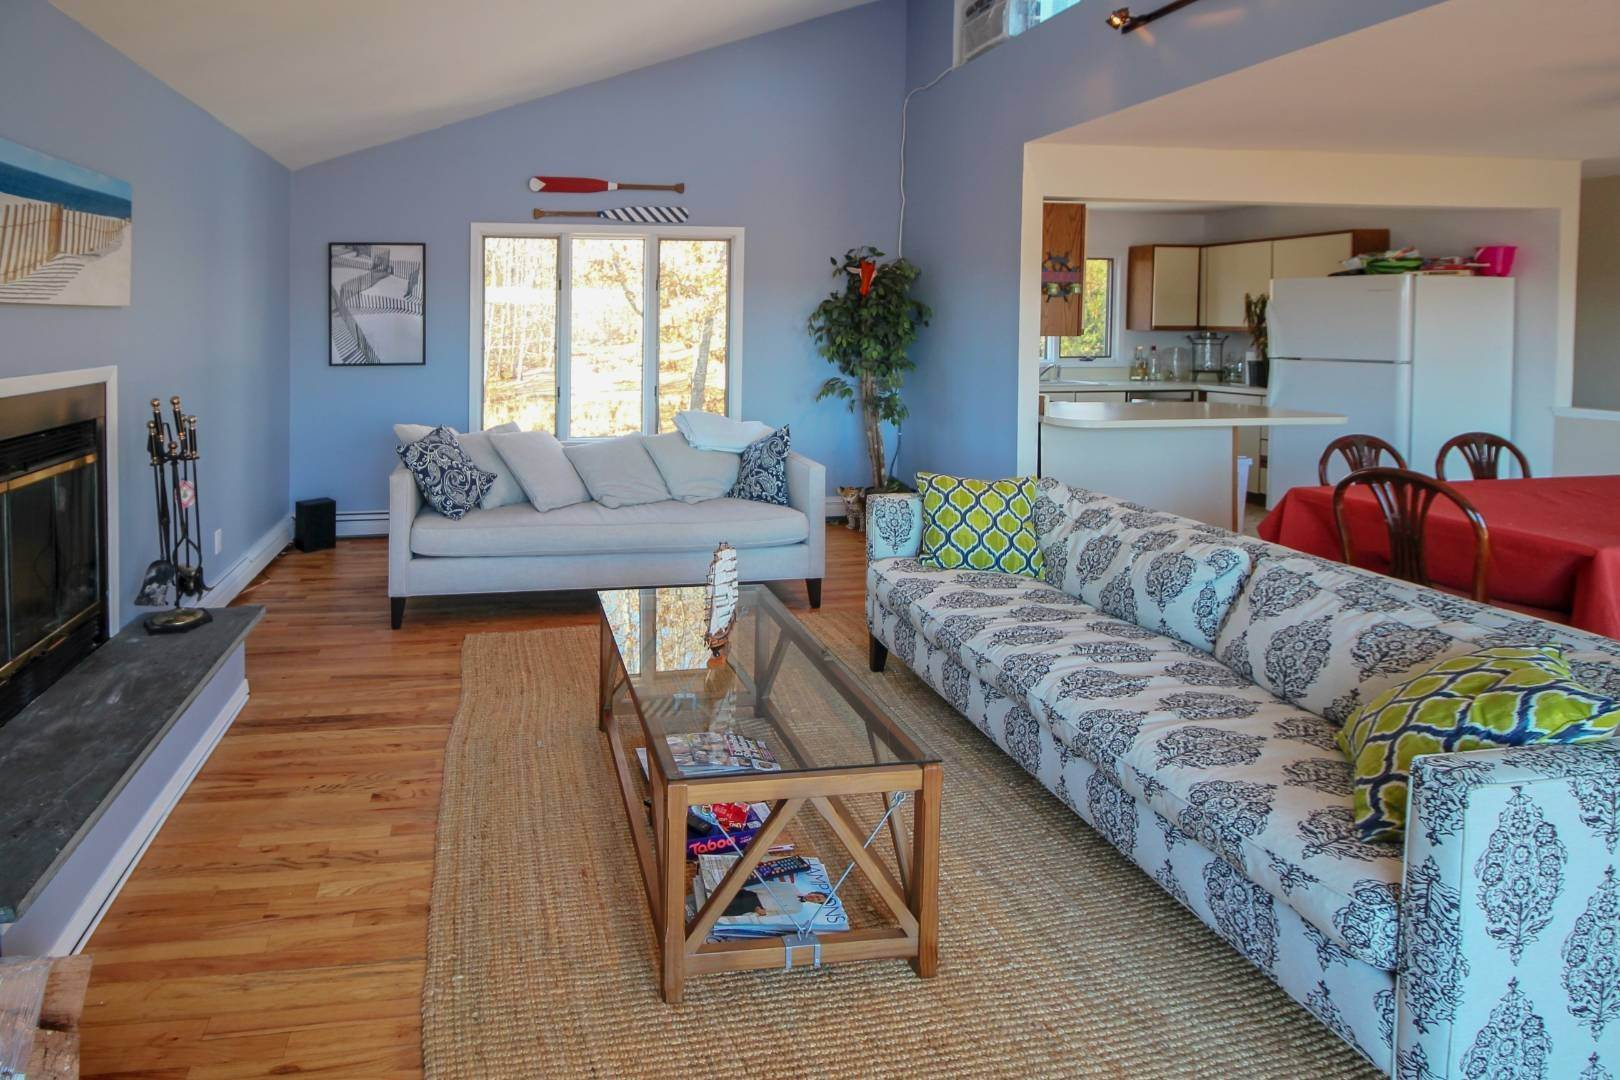 6. Single Family Home at Sag Harbor 4 Bedroom Close To Long Beach! Sag Harbor, NY 11963